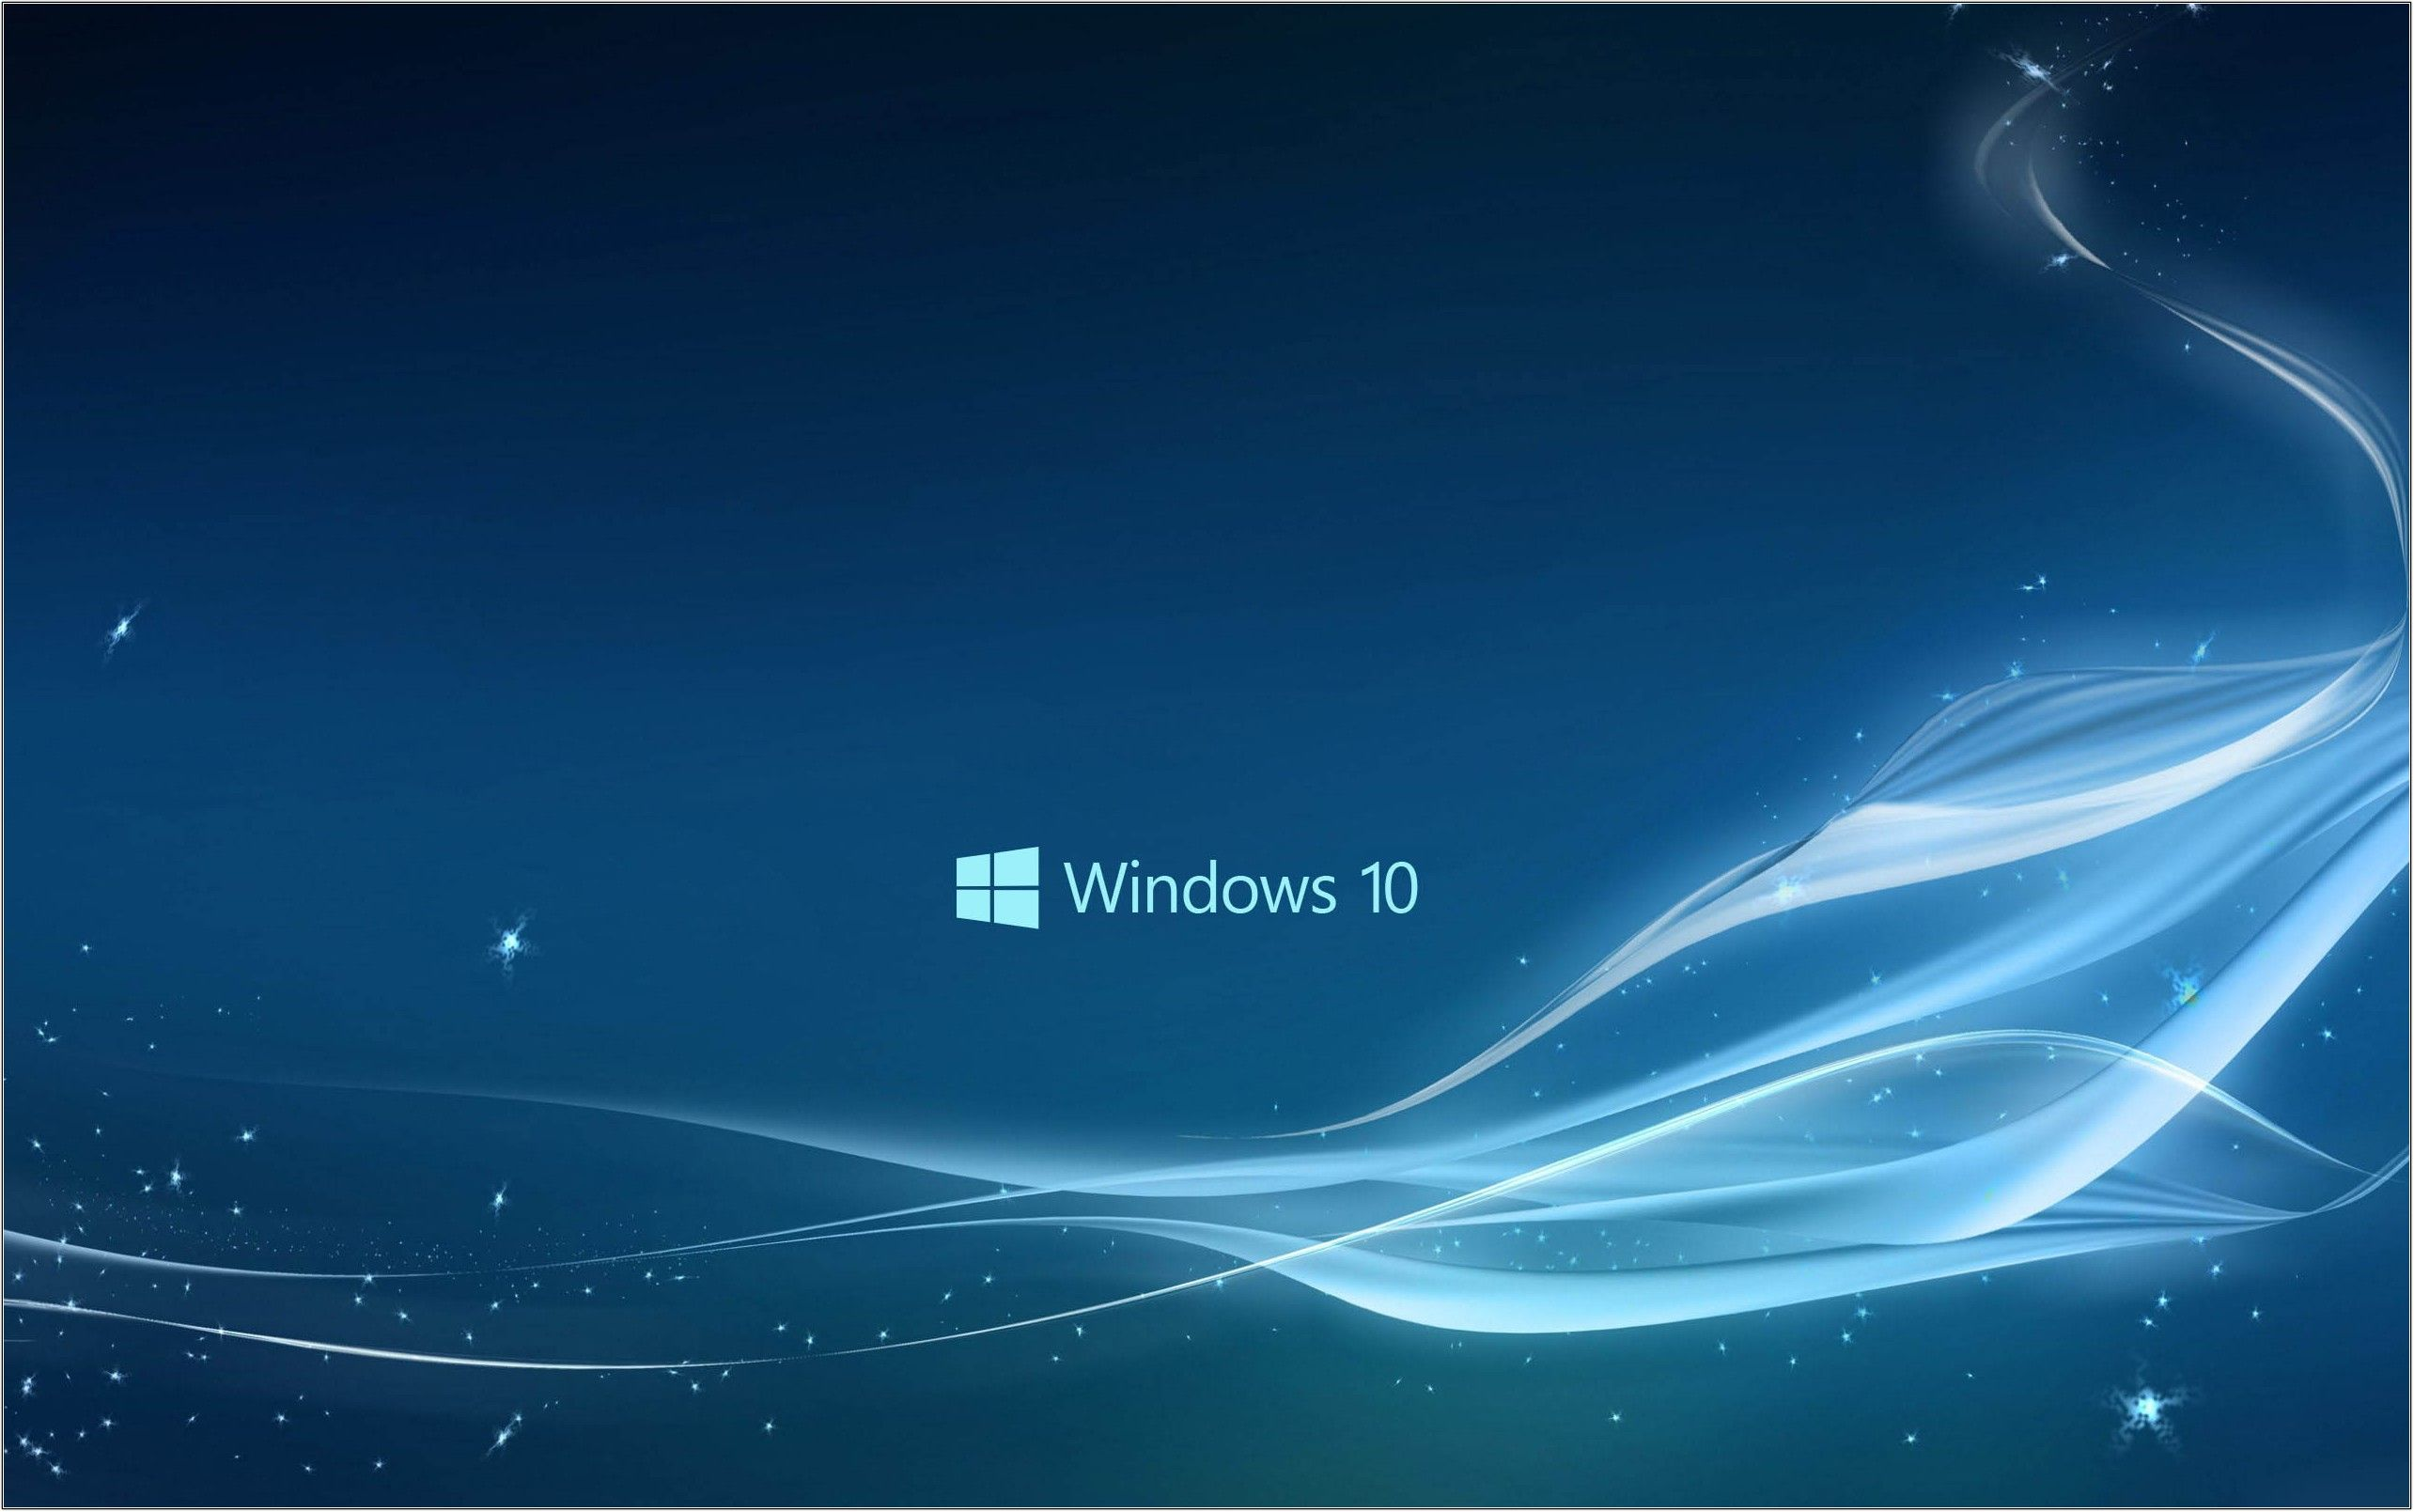 Windows 10 Wallpaper Hd 19201080 Wallpaper Windows 10 Windows Wallpaper Pc Desktop Wallpaper